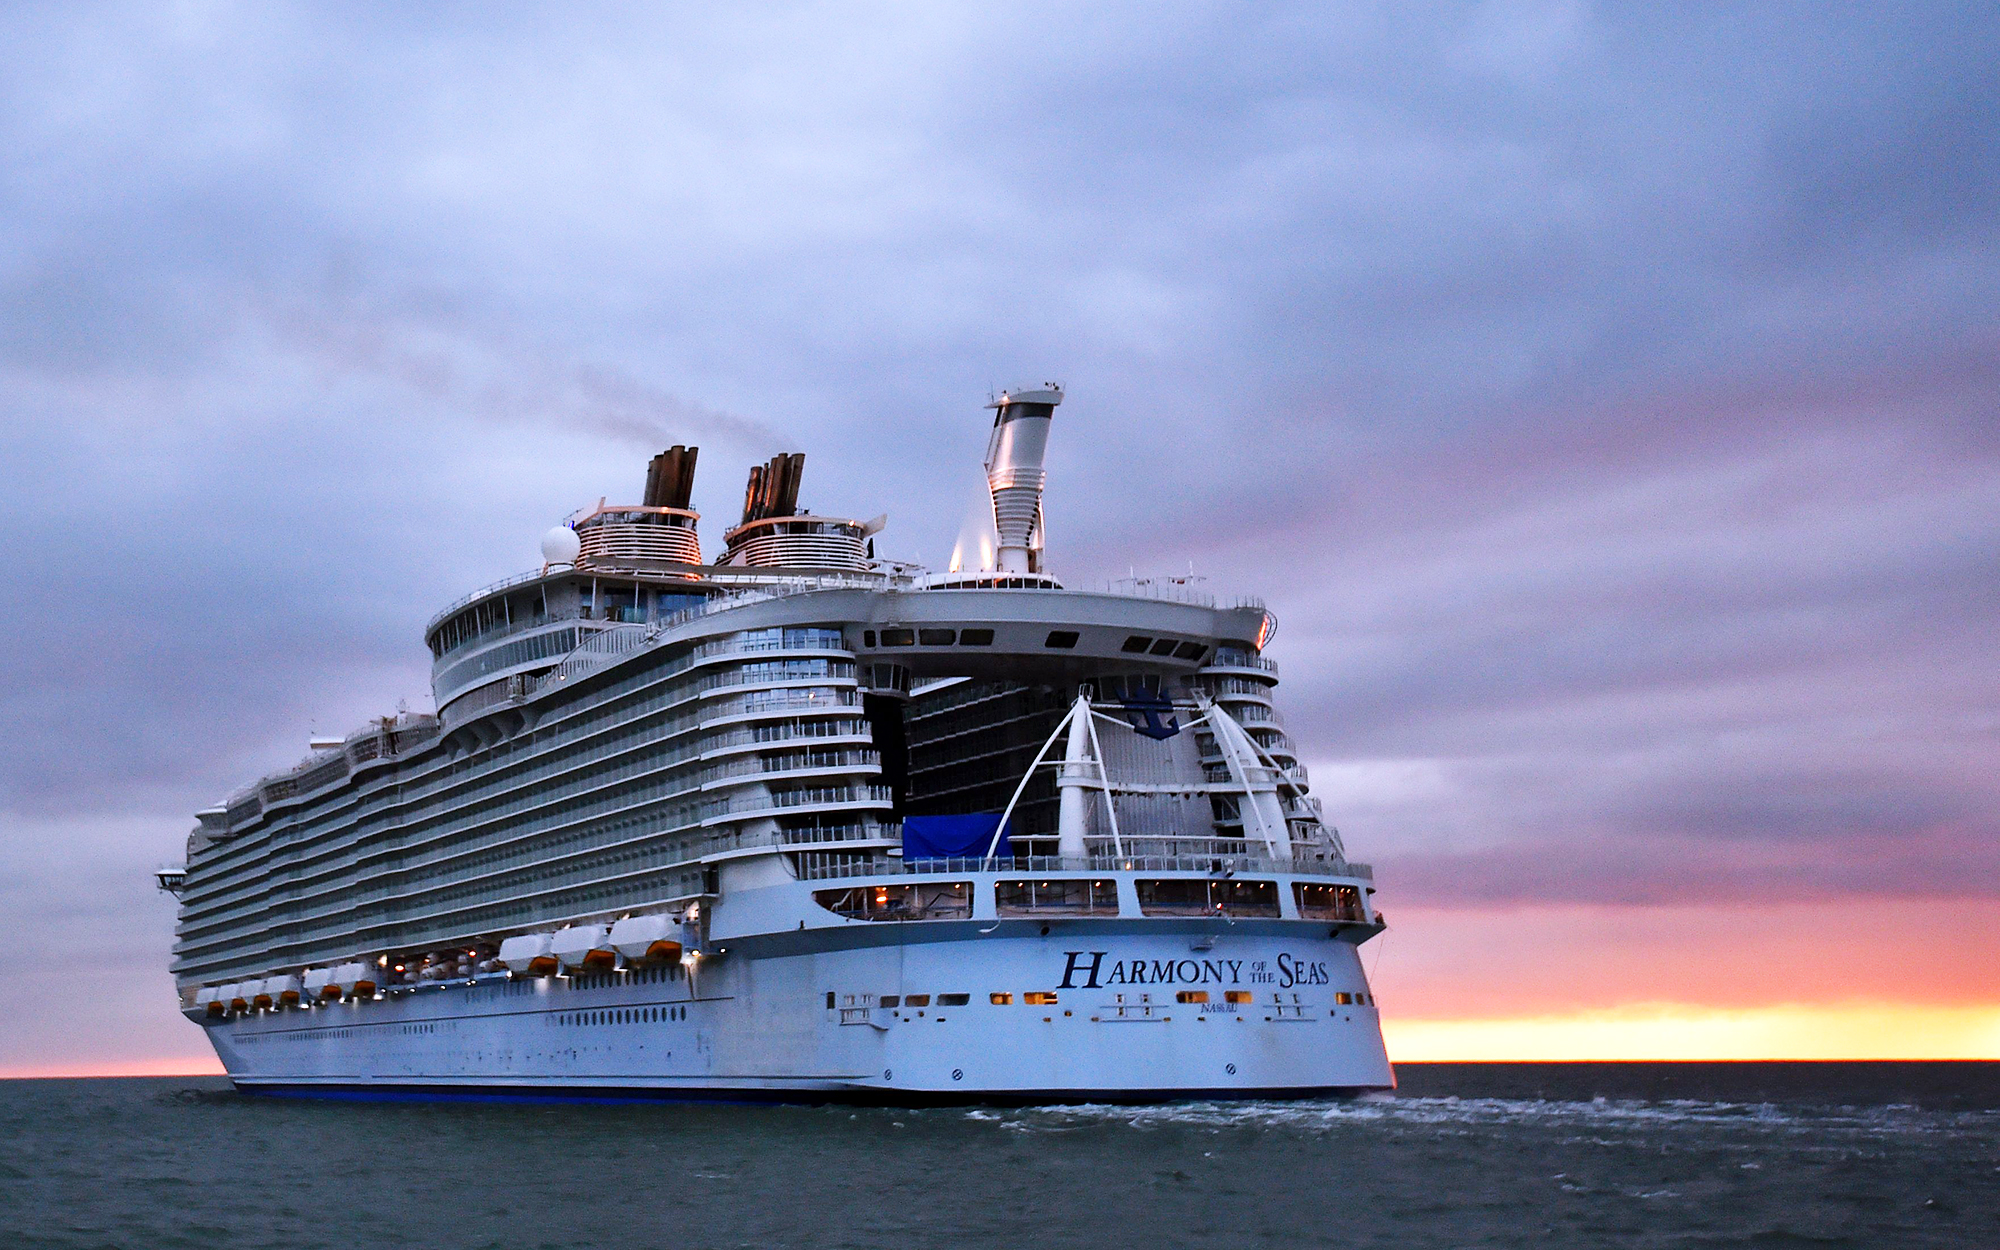 Harmony of the Seas, largest cruise ship